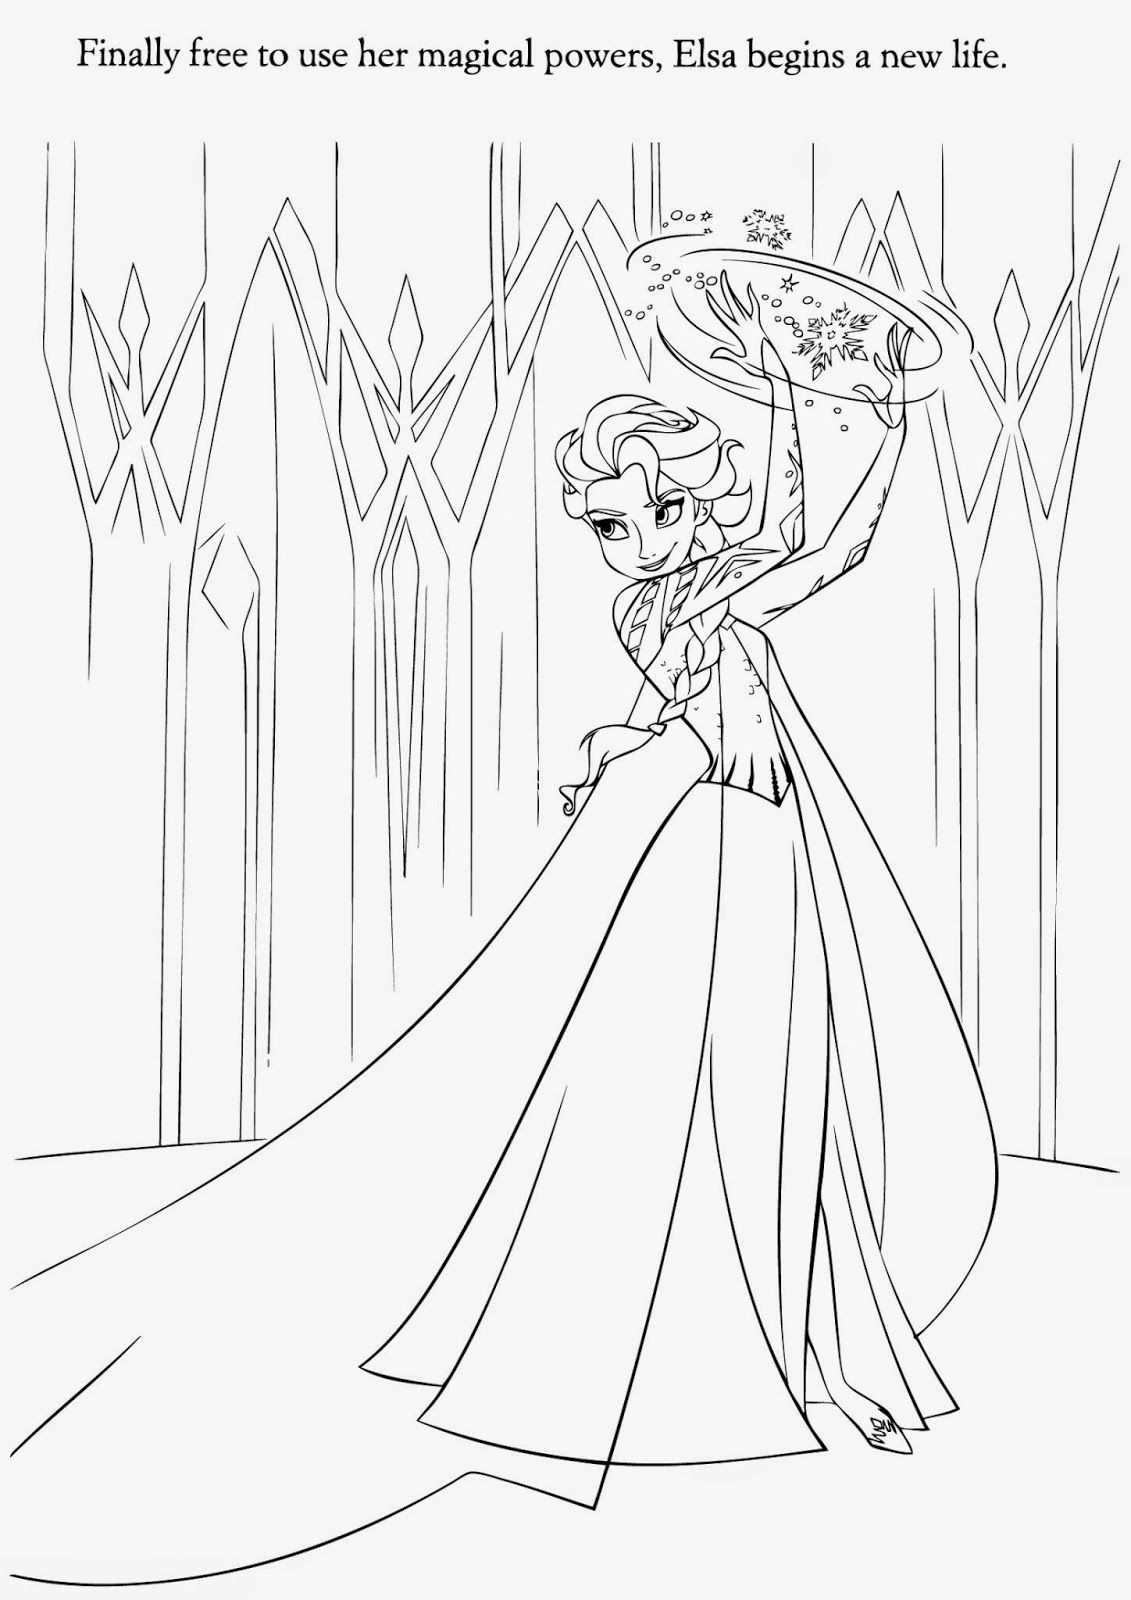 Disney Elsa Frozen Coloring Pages 2015 | Frozen coloring ...